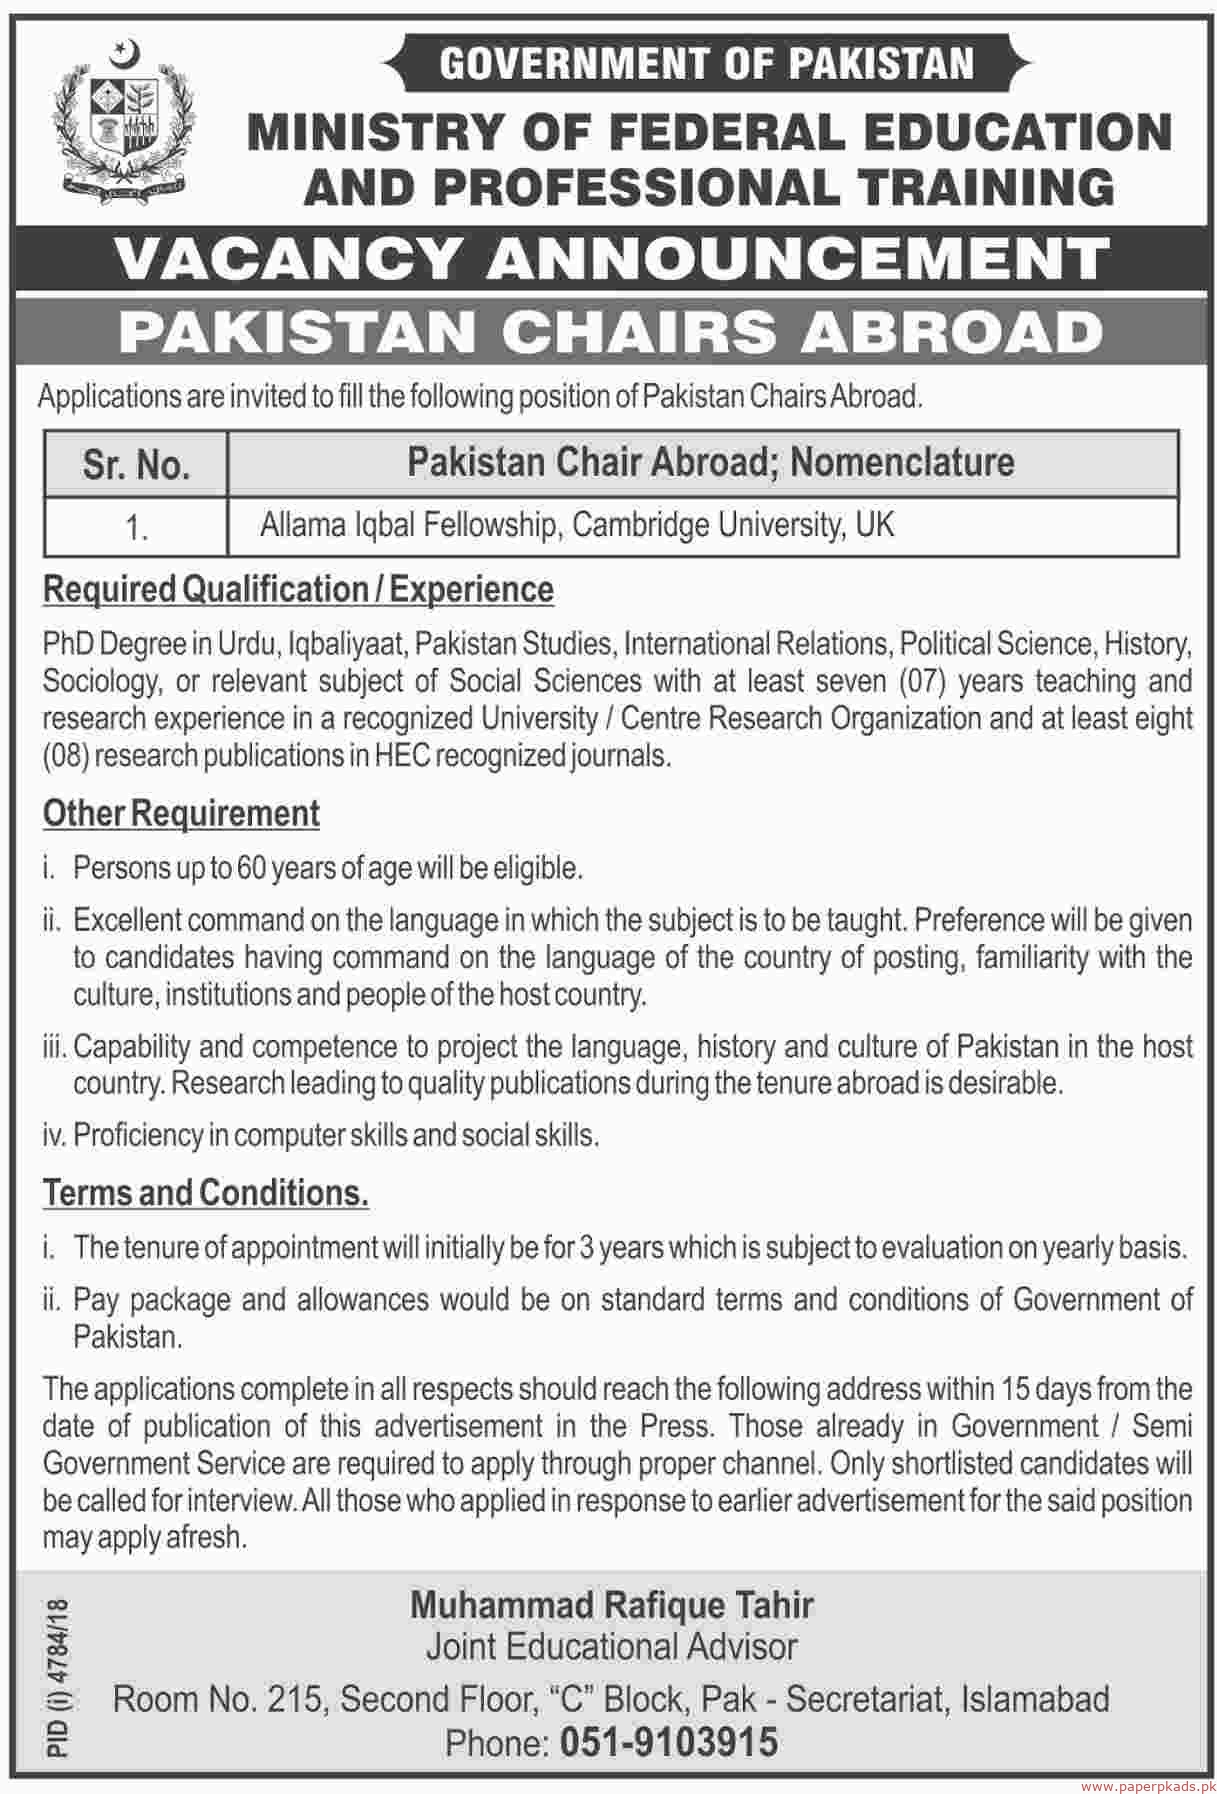 Ministry of Federal Education and Professional Training Jobs 2019 Latest